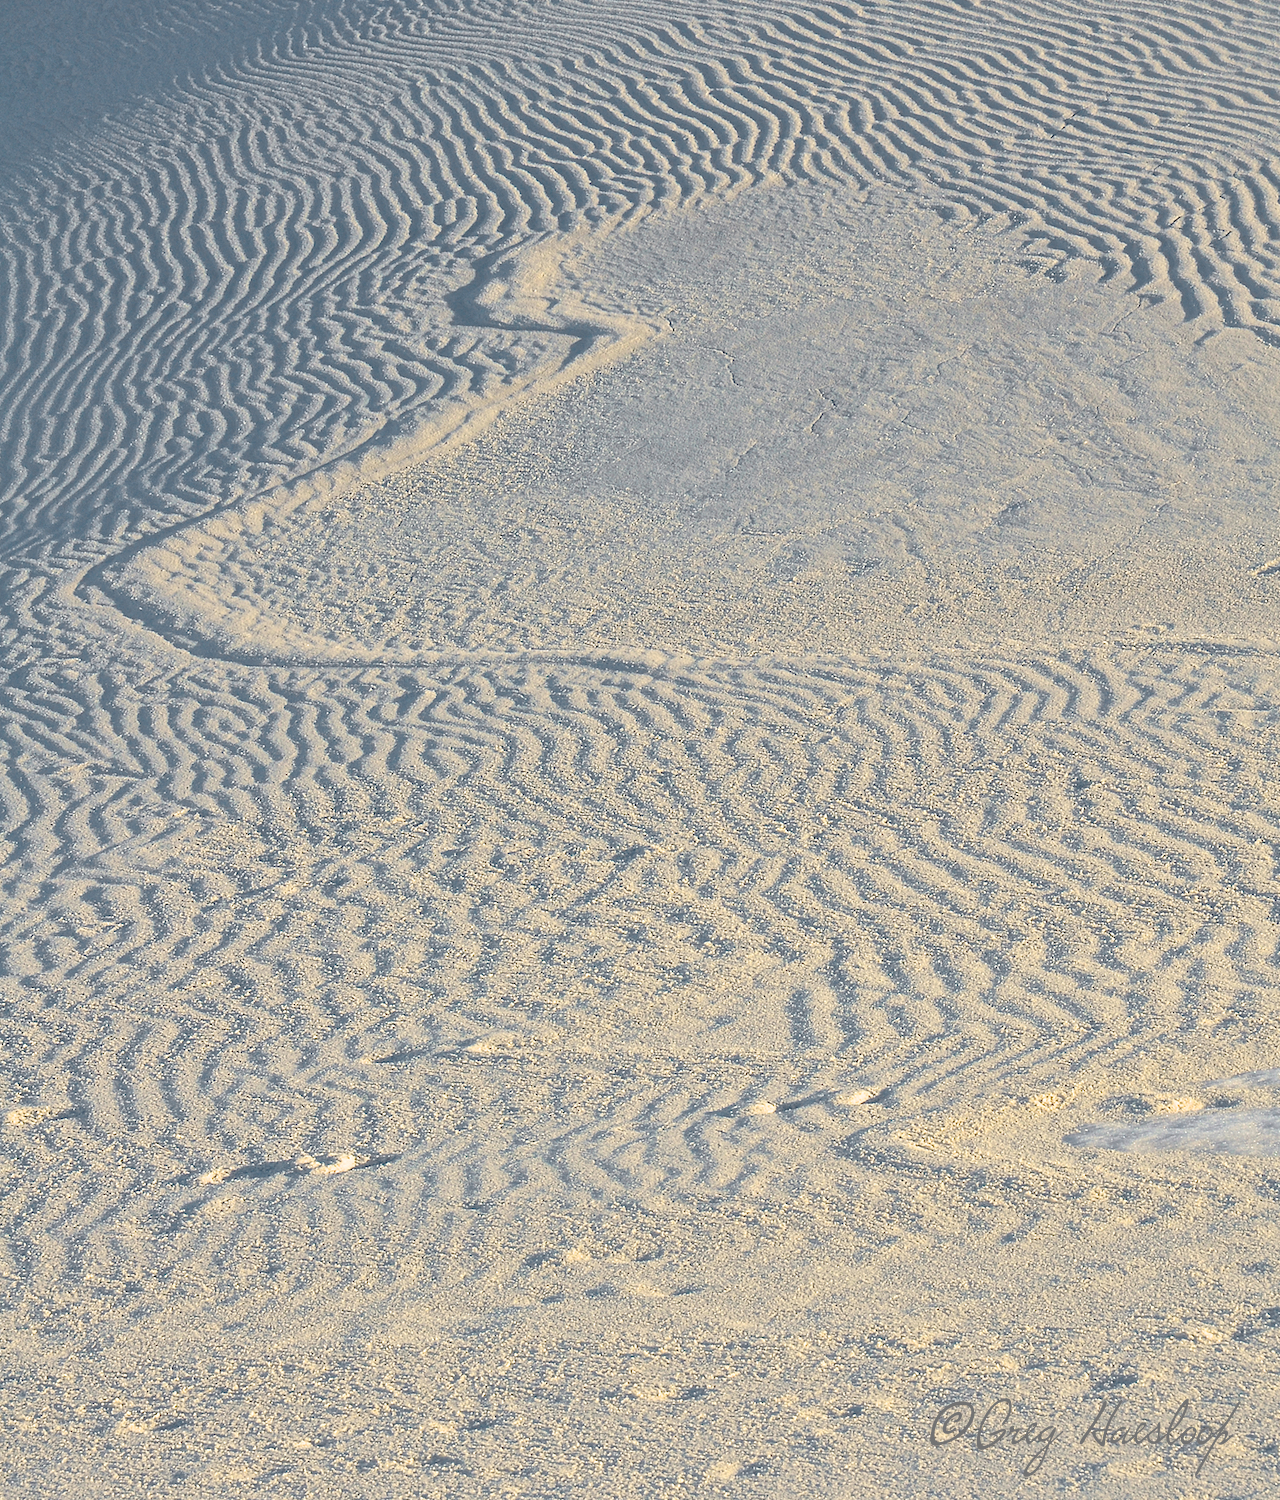 Melted snowrunning down and erasing sand ripples.